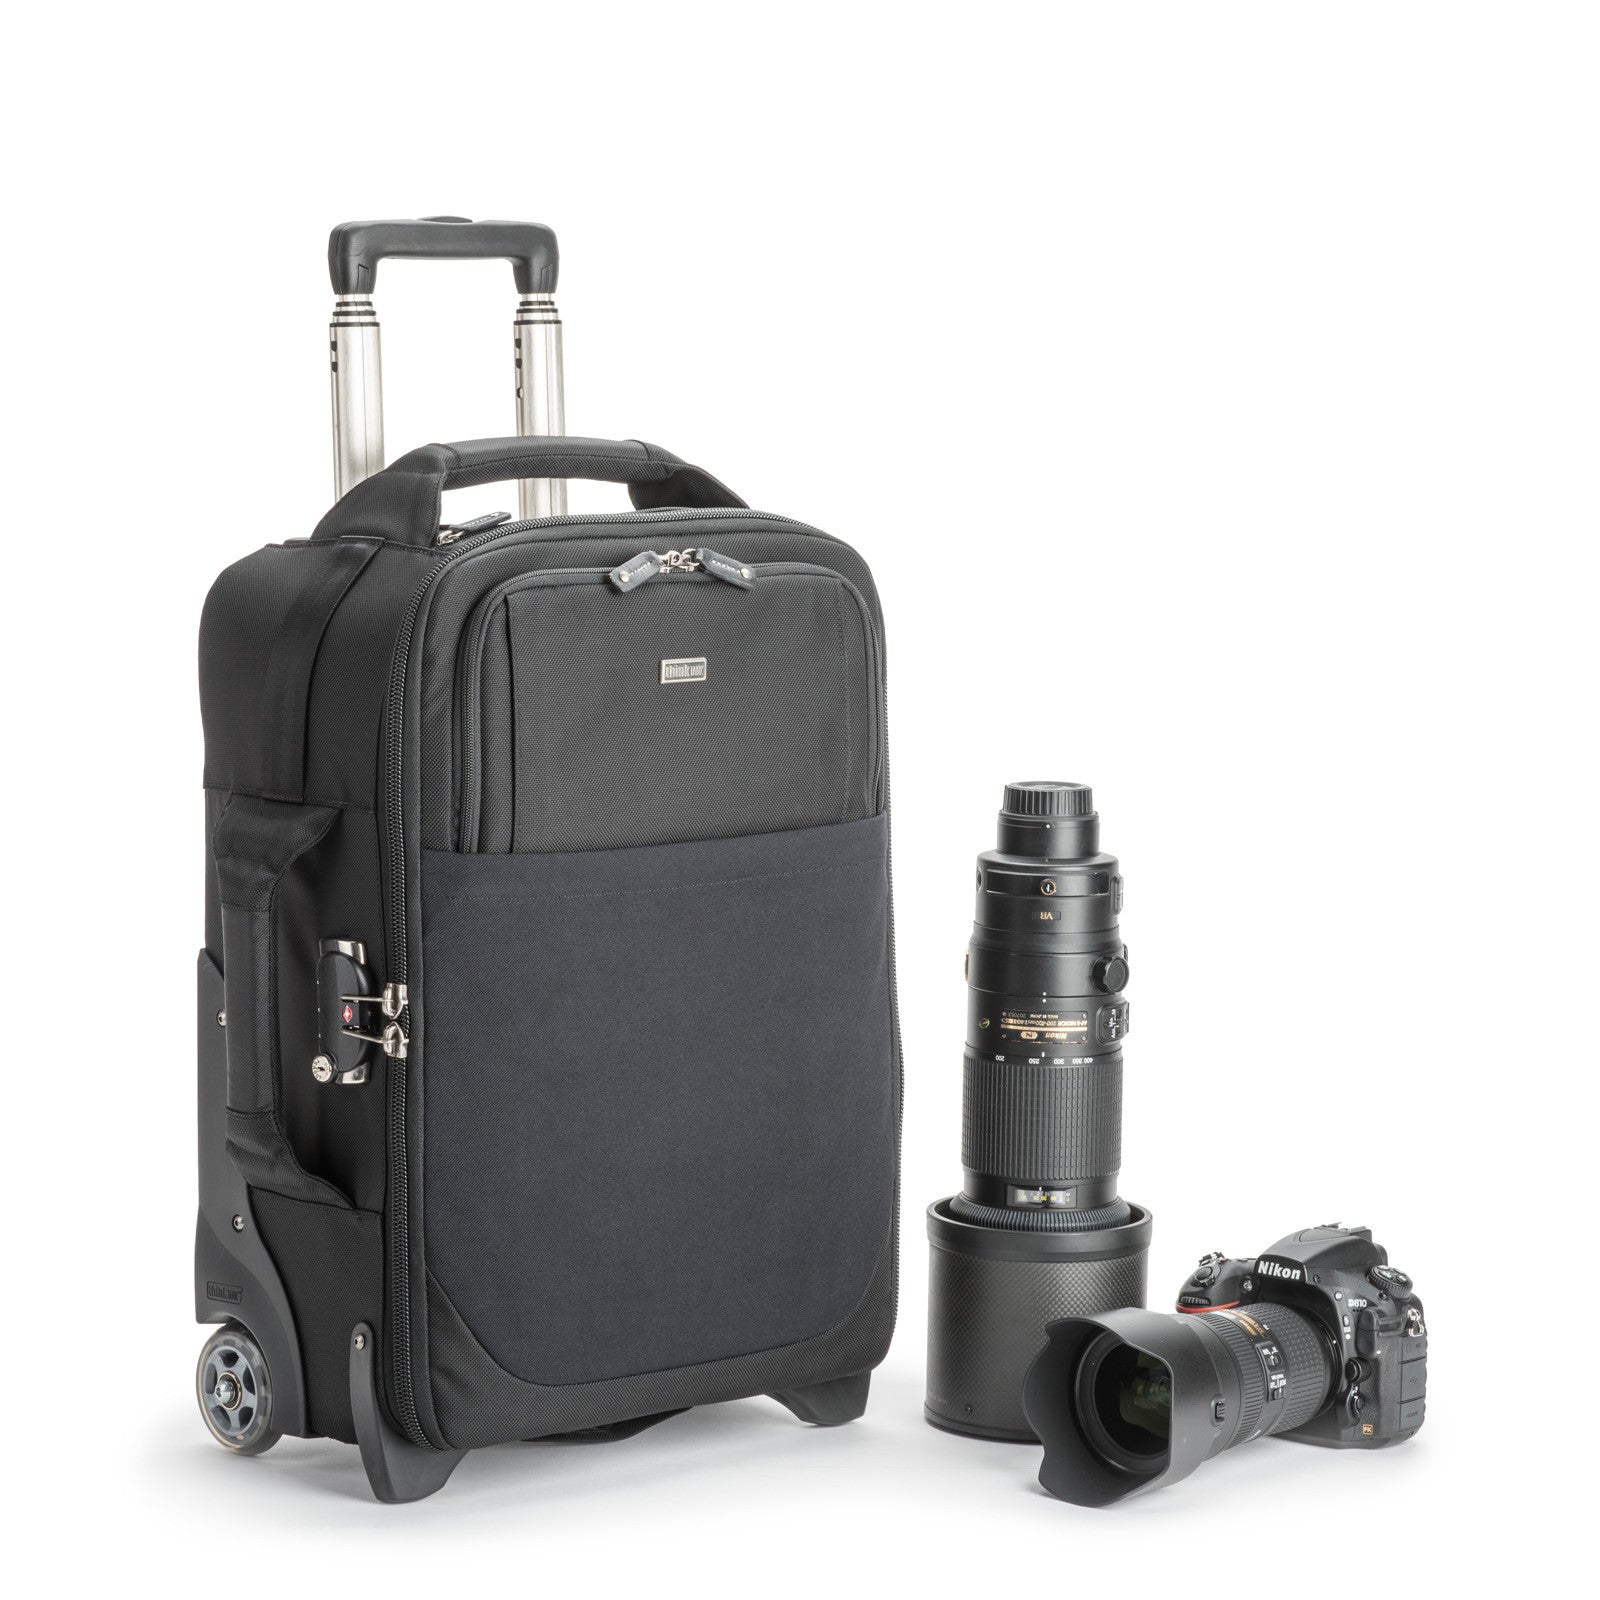 Specially designed interior to maximize gear for carry on, meets most U.S. and international airline carry on requirements